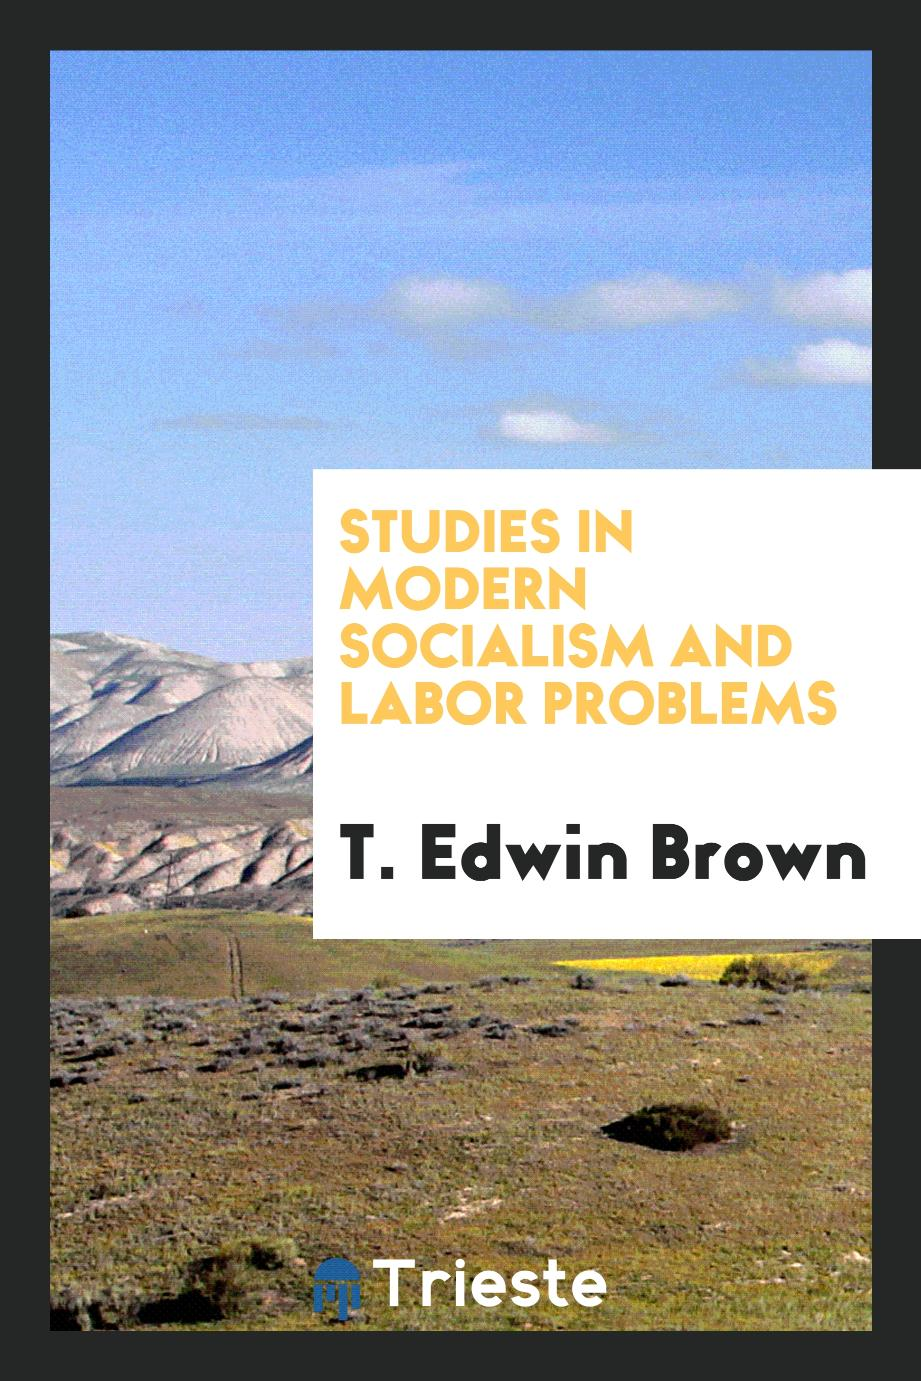 Studies in modern socialism and labor problems